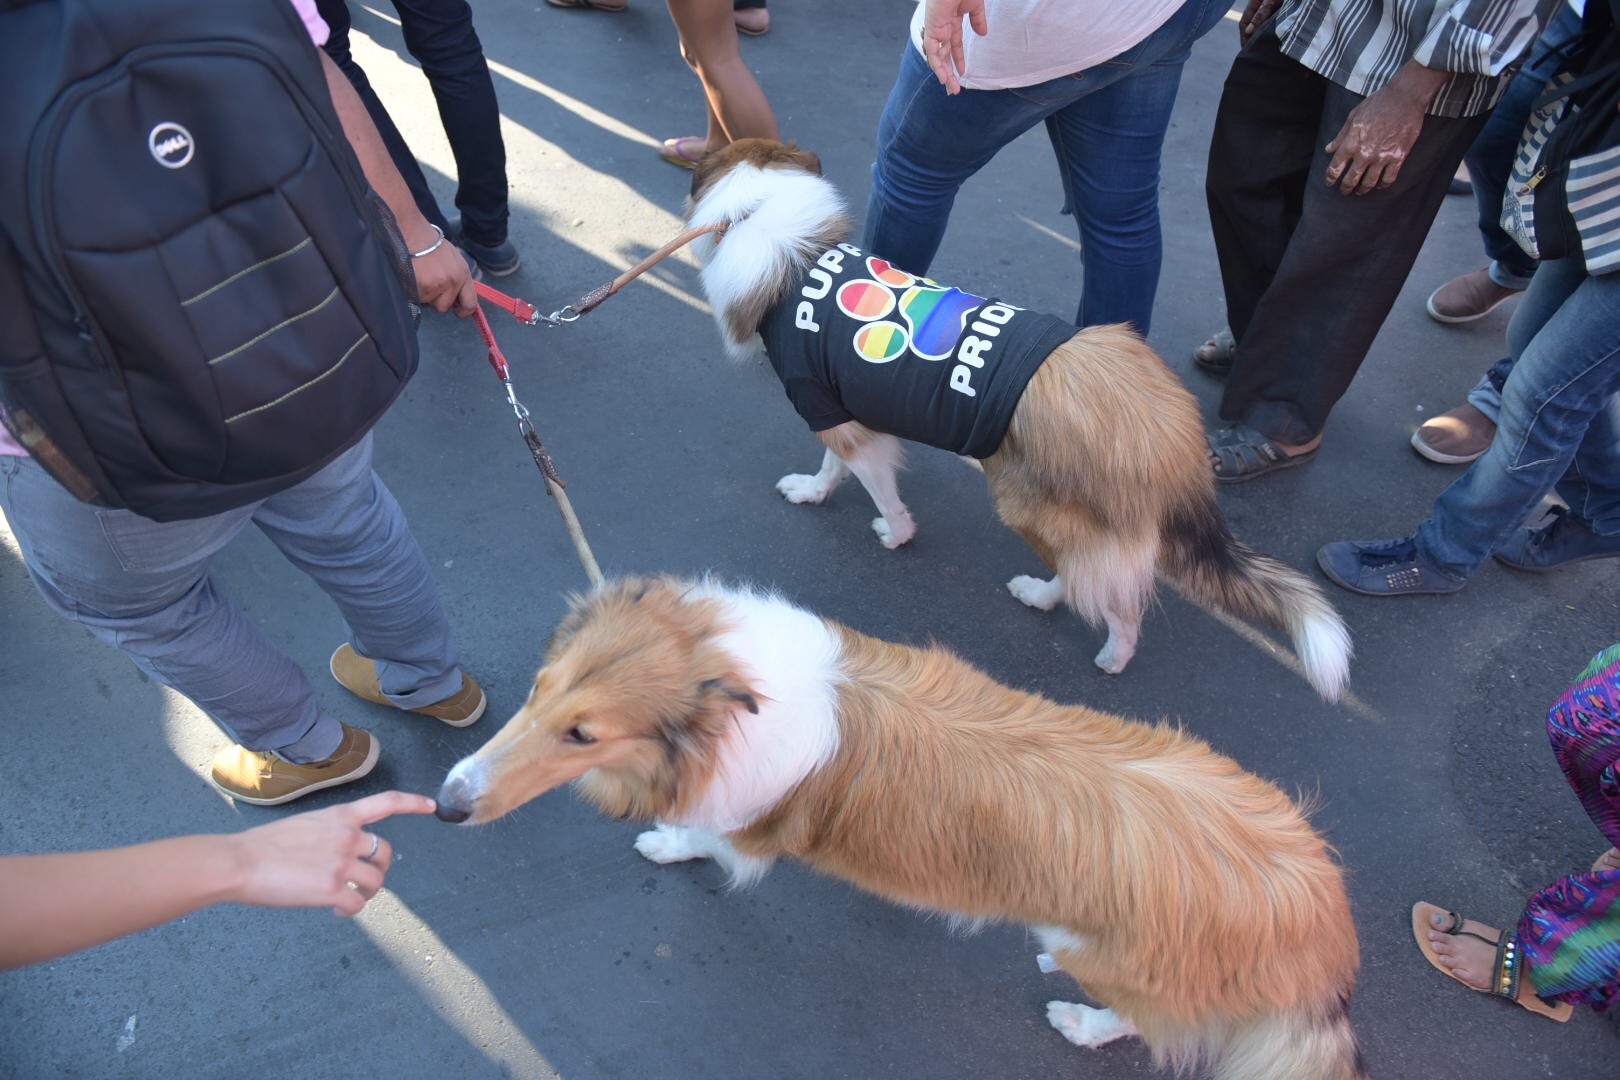 Puppies marched for pride too.